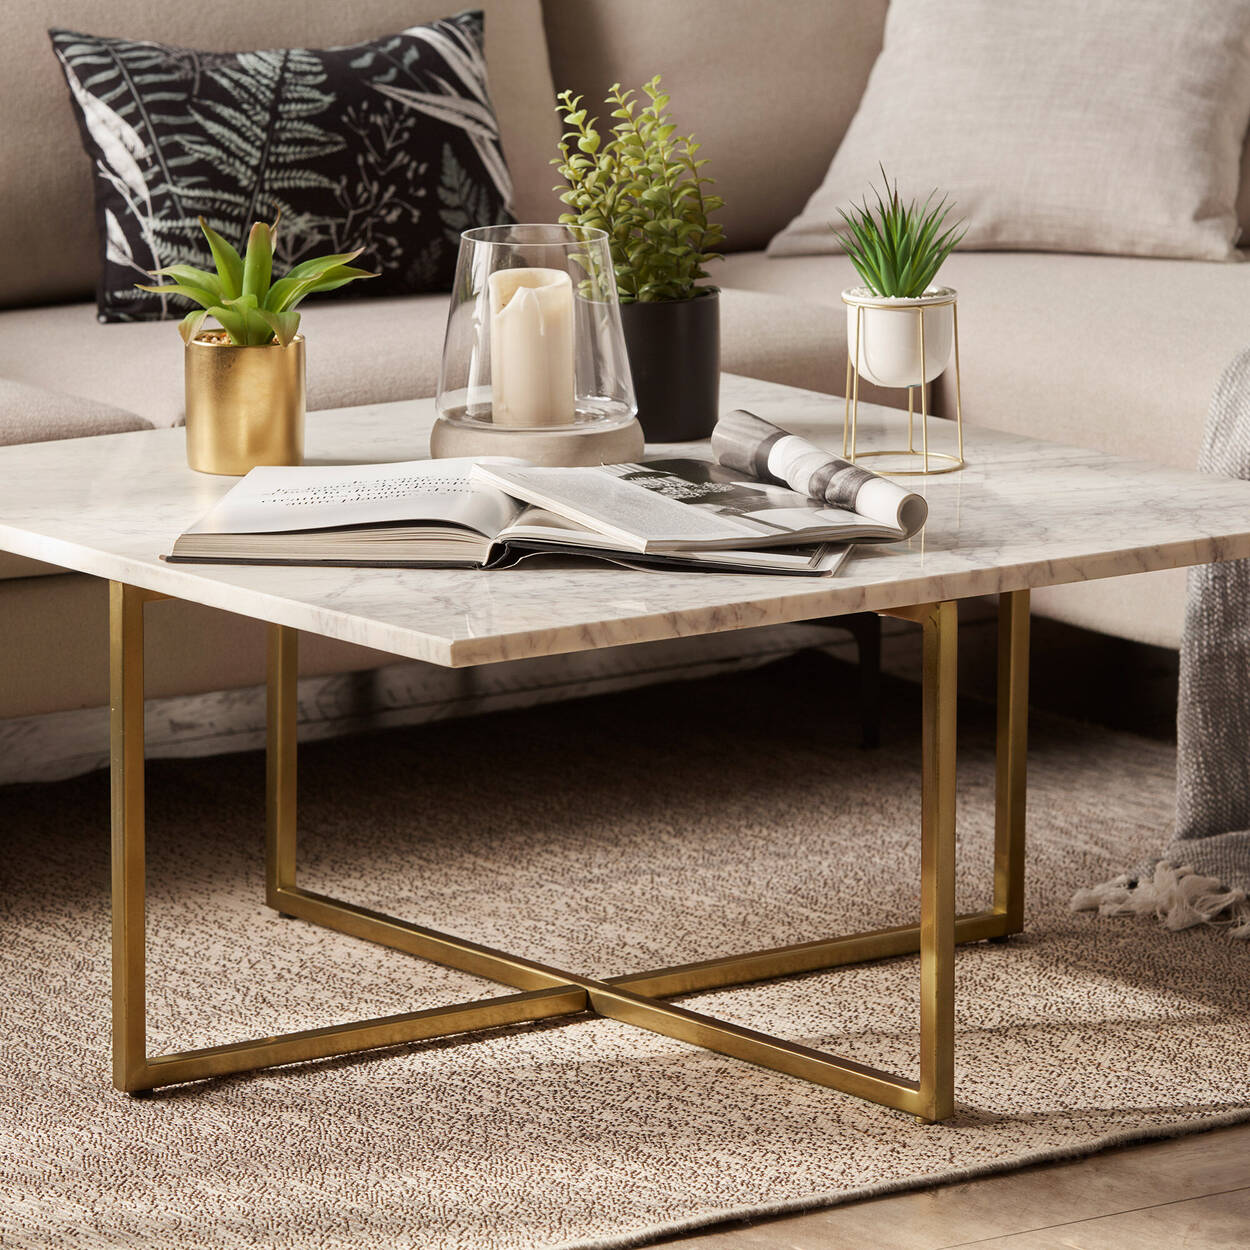 Marble and Metal Coffee Table